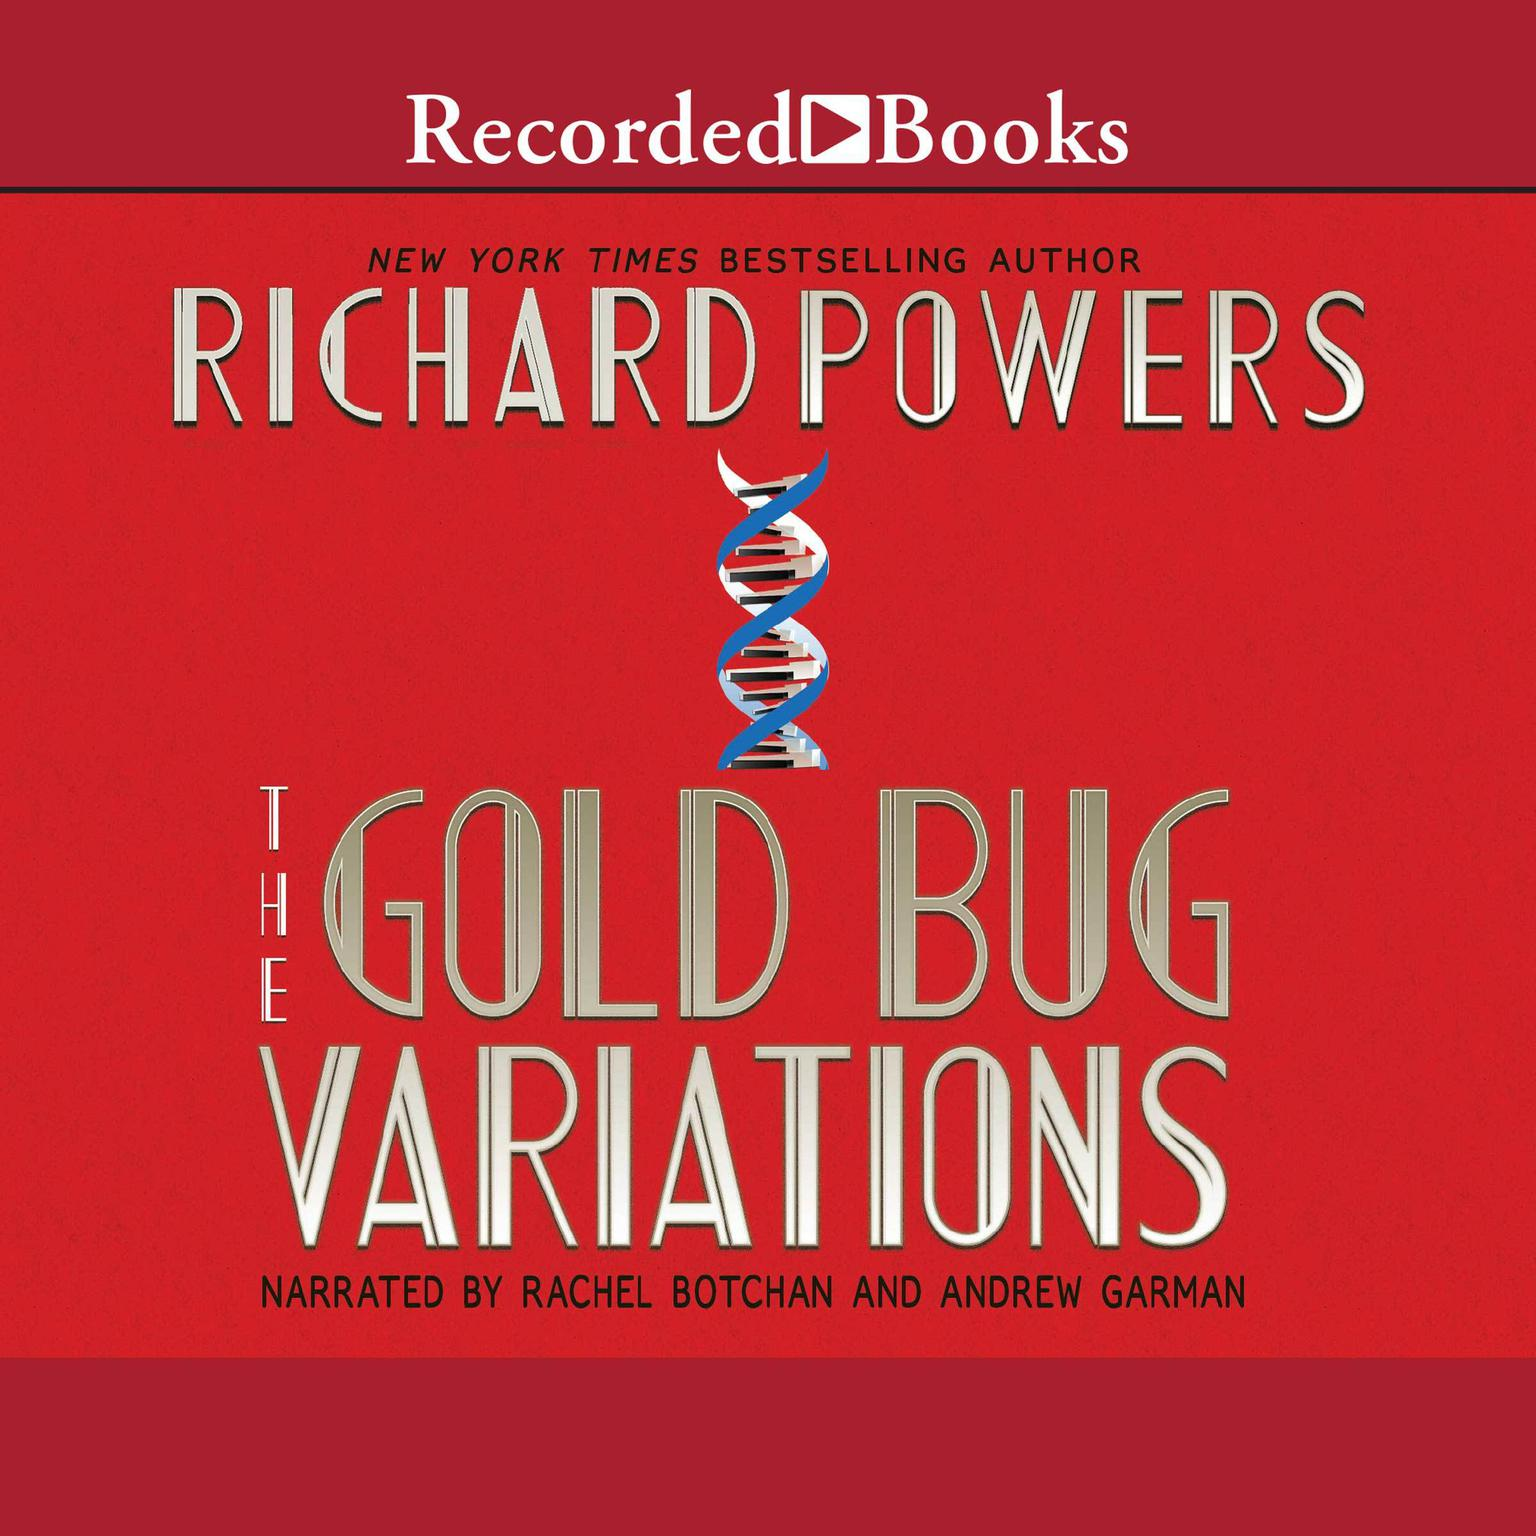 Printable The Gold Bug Variations Audiobook Cover Art